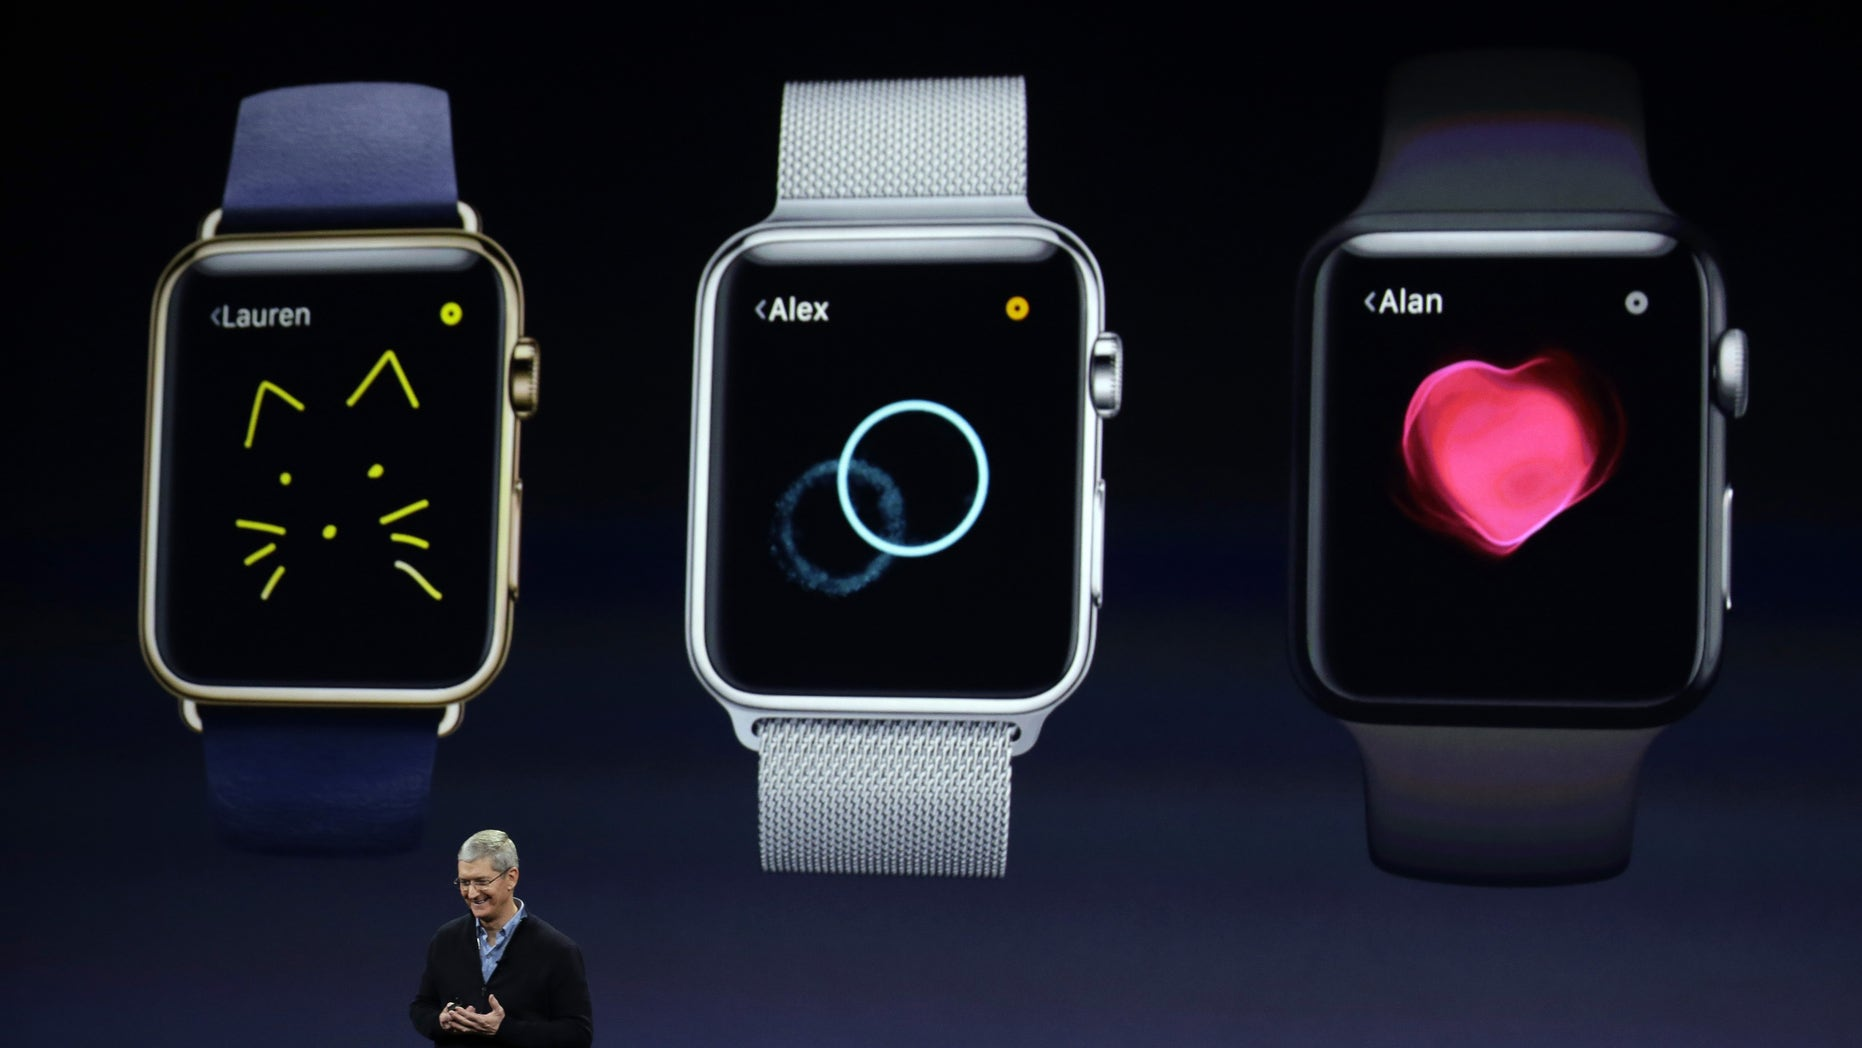 File photo: Apple CEO Tim Cook talks about the new Apple Watch during an Apple event on Monday, March 9, 2015, in San Francisco. (AP Photo/Eric Risberg)